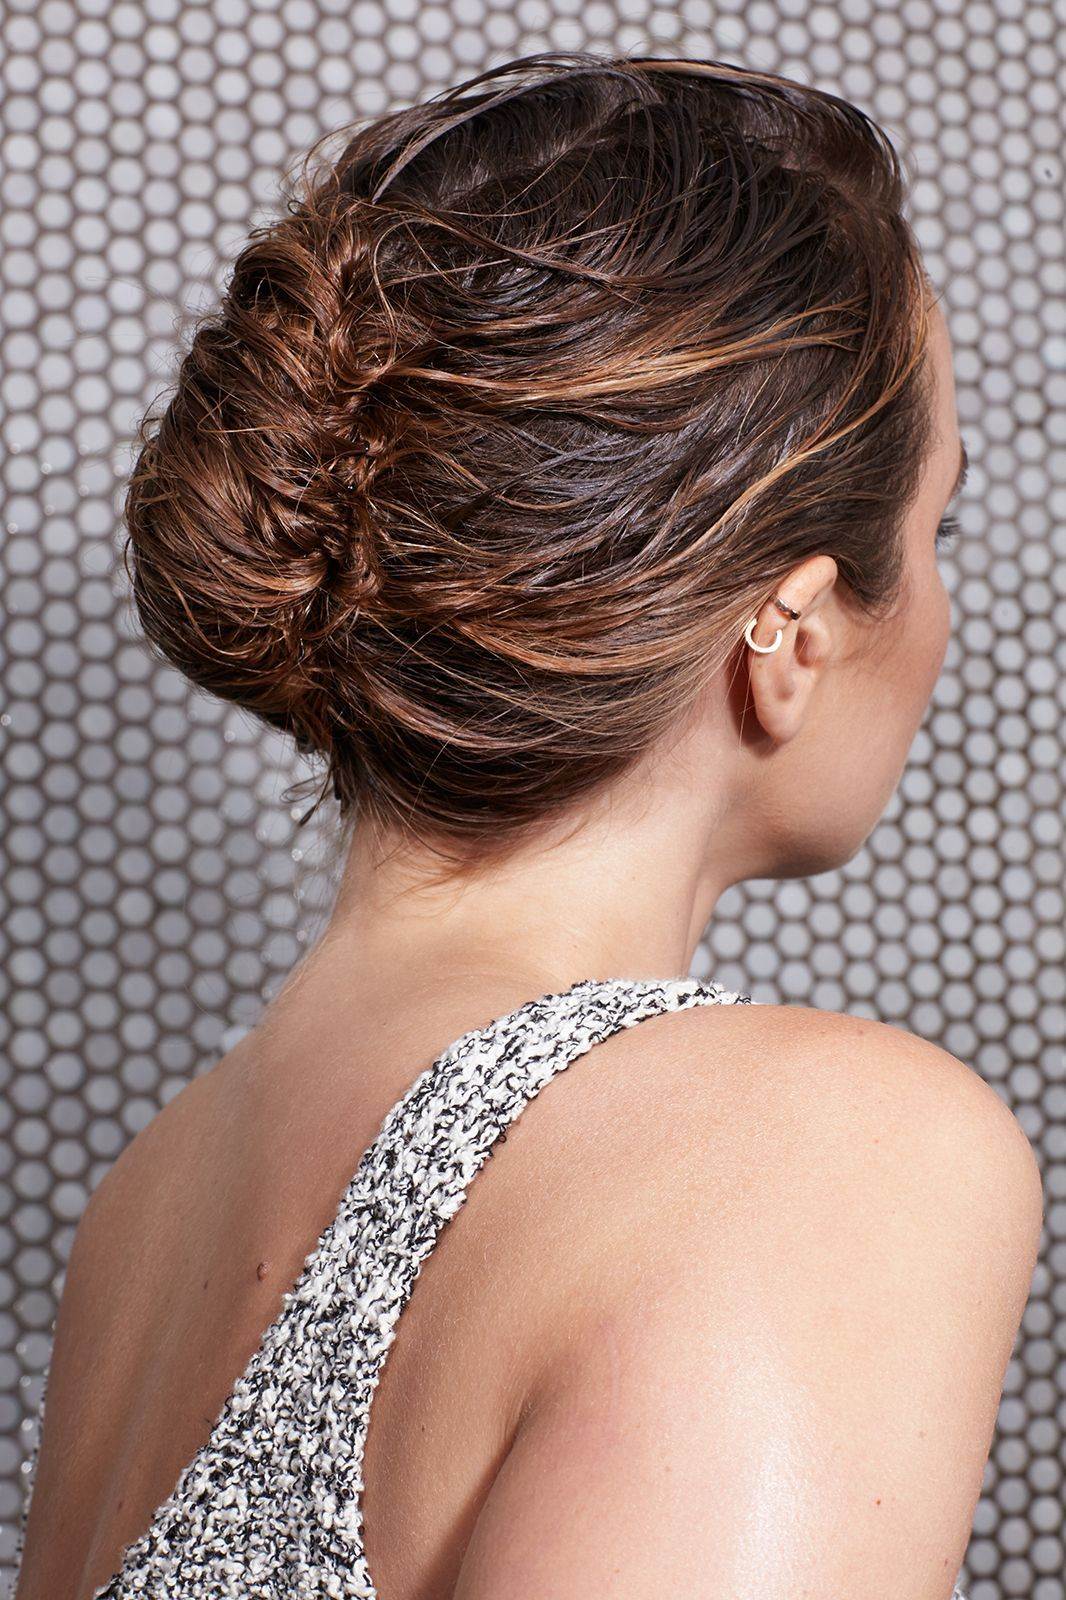 4 wet hairstyles to get you out the door fast  hair